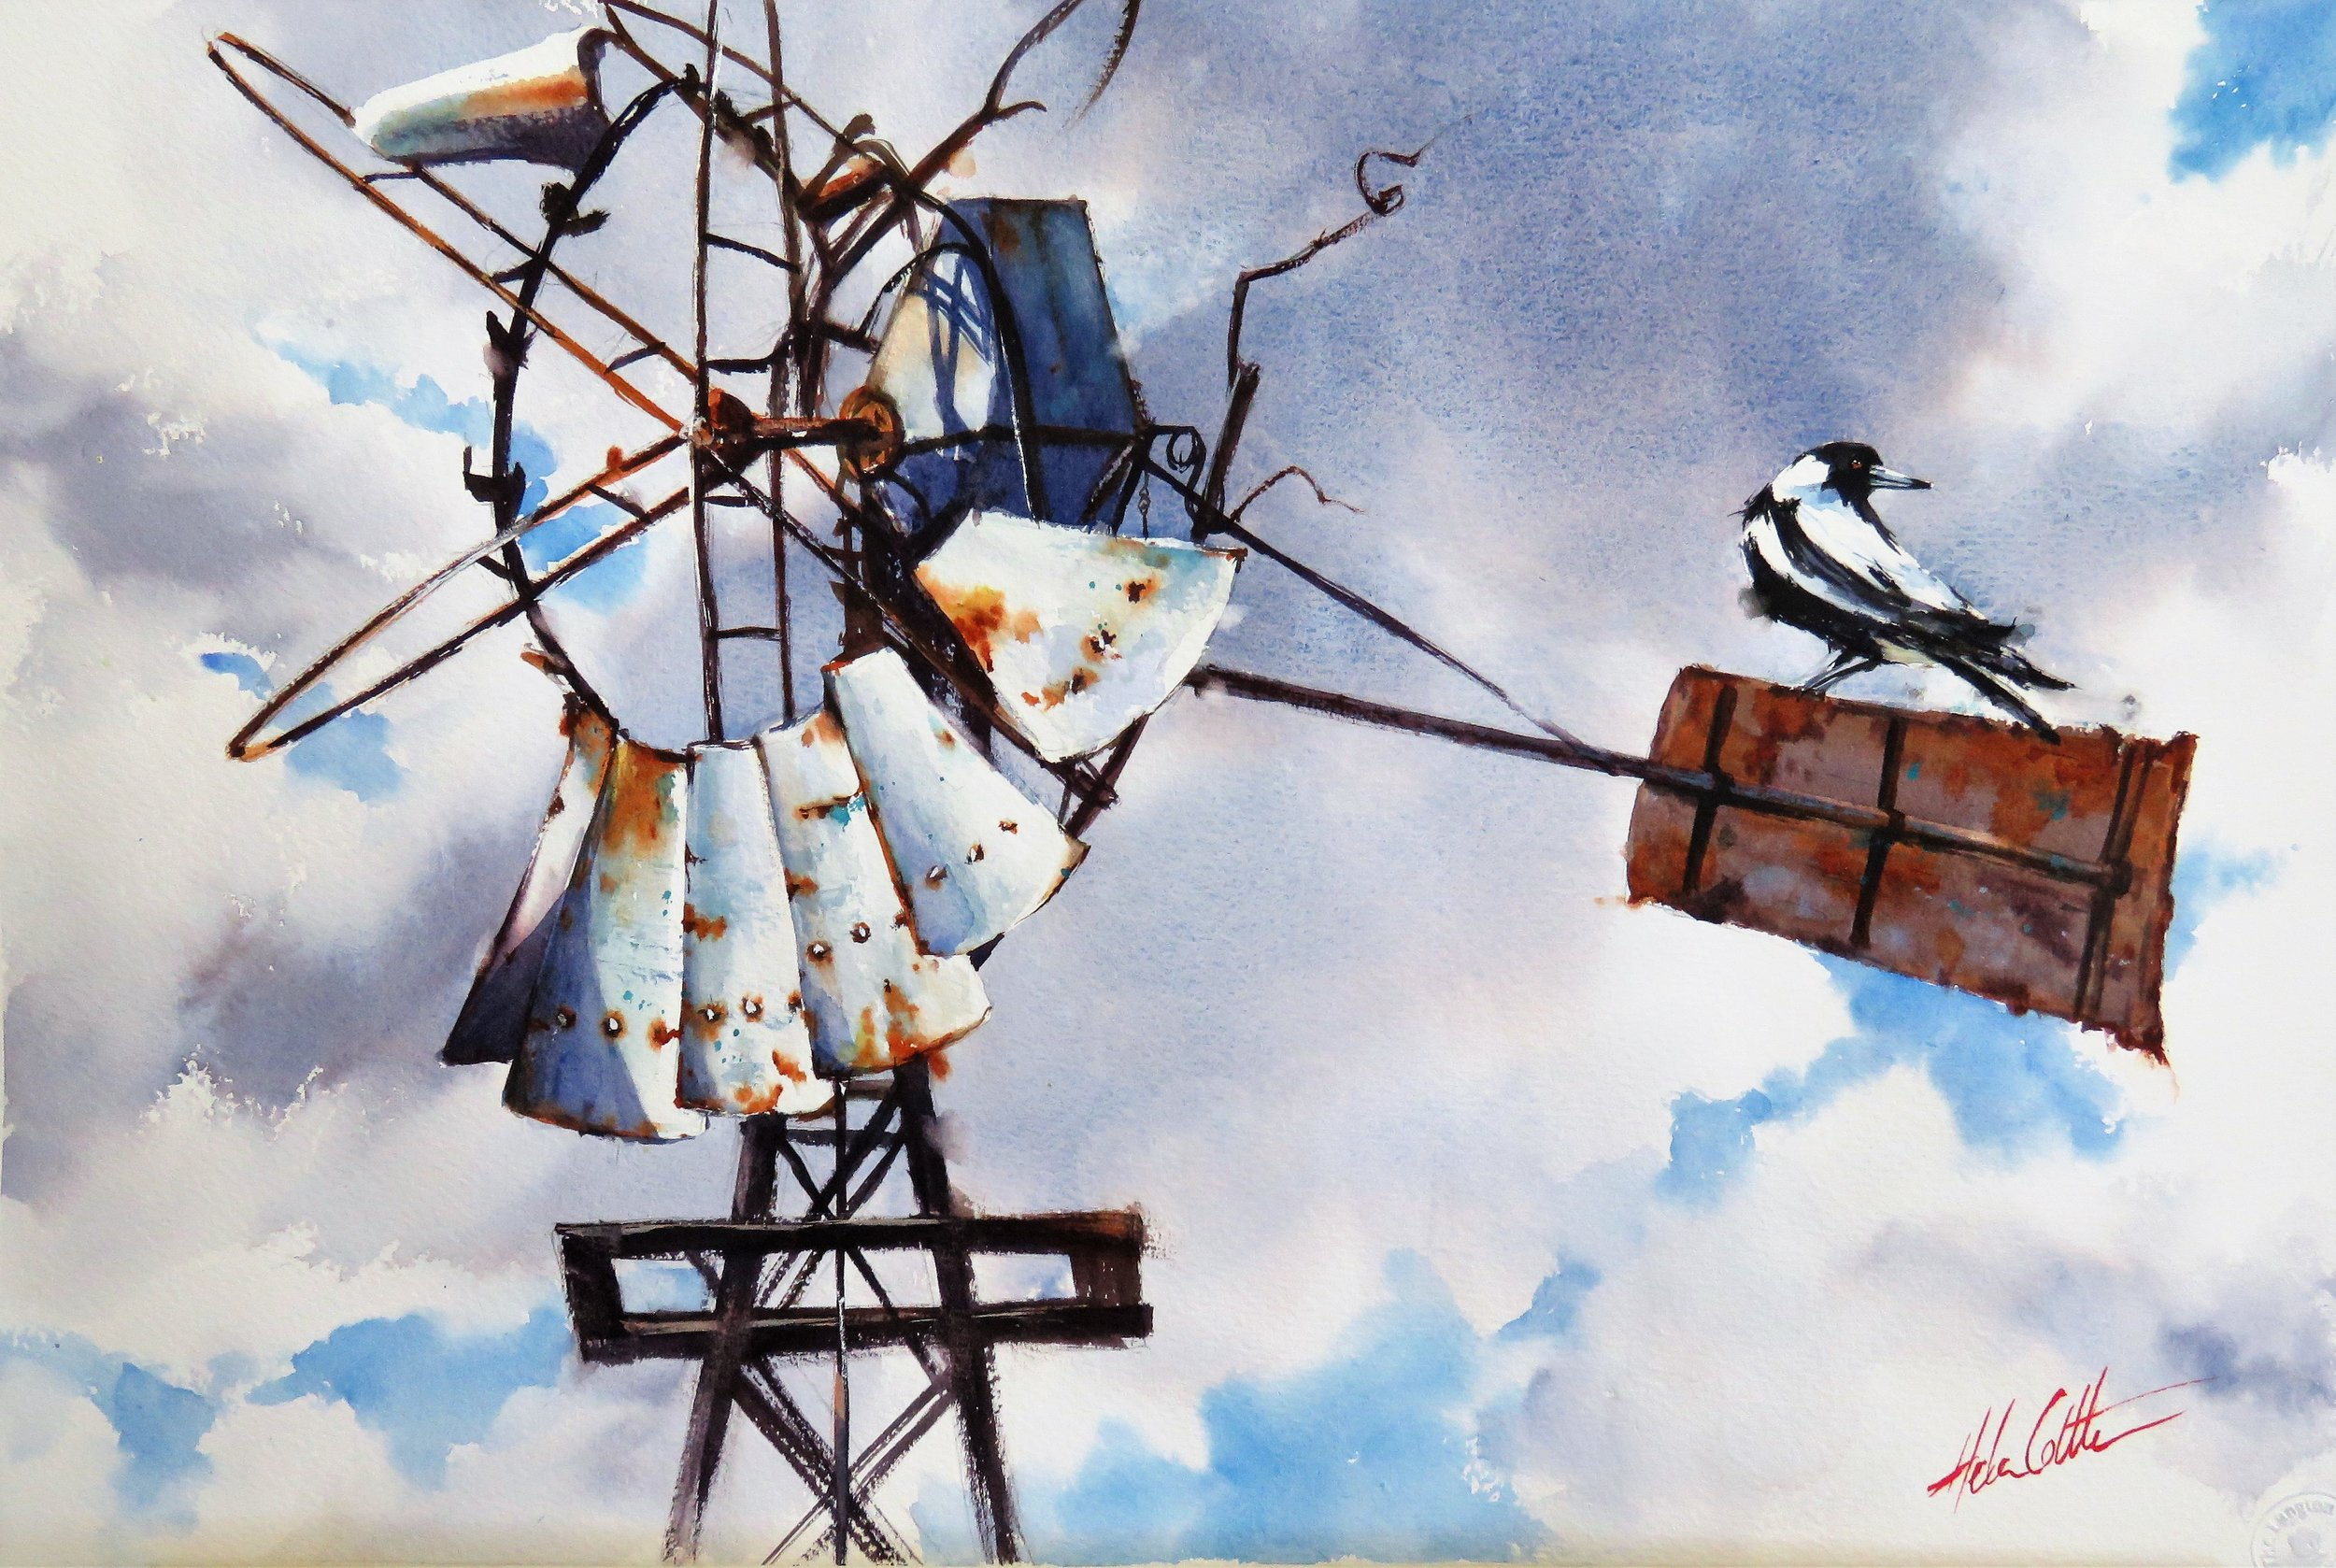 SEEN BETTER DAYS WATERCOLOUR 36X54CM BY HELEN COTTLE.JPG